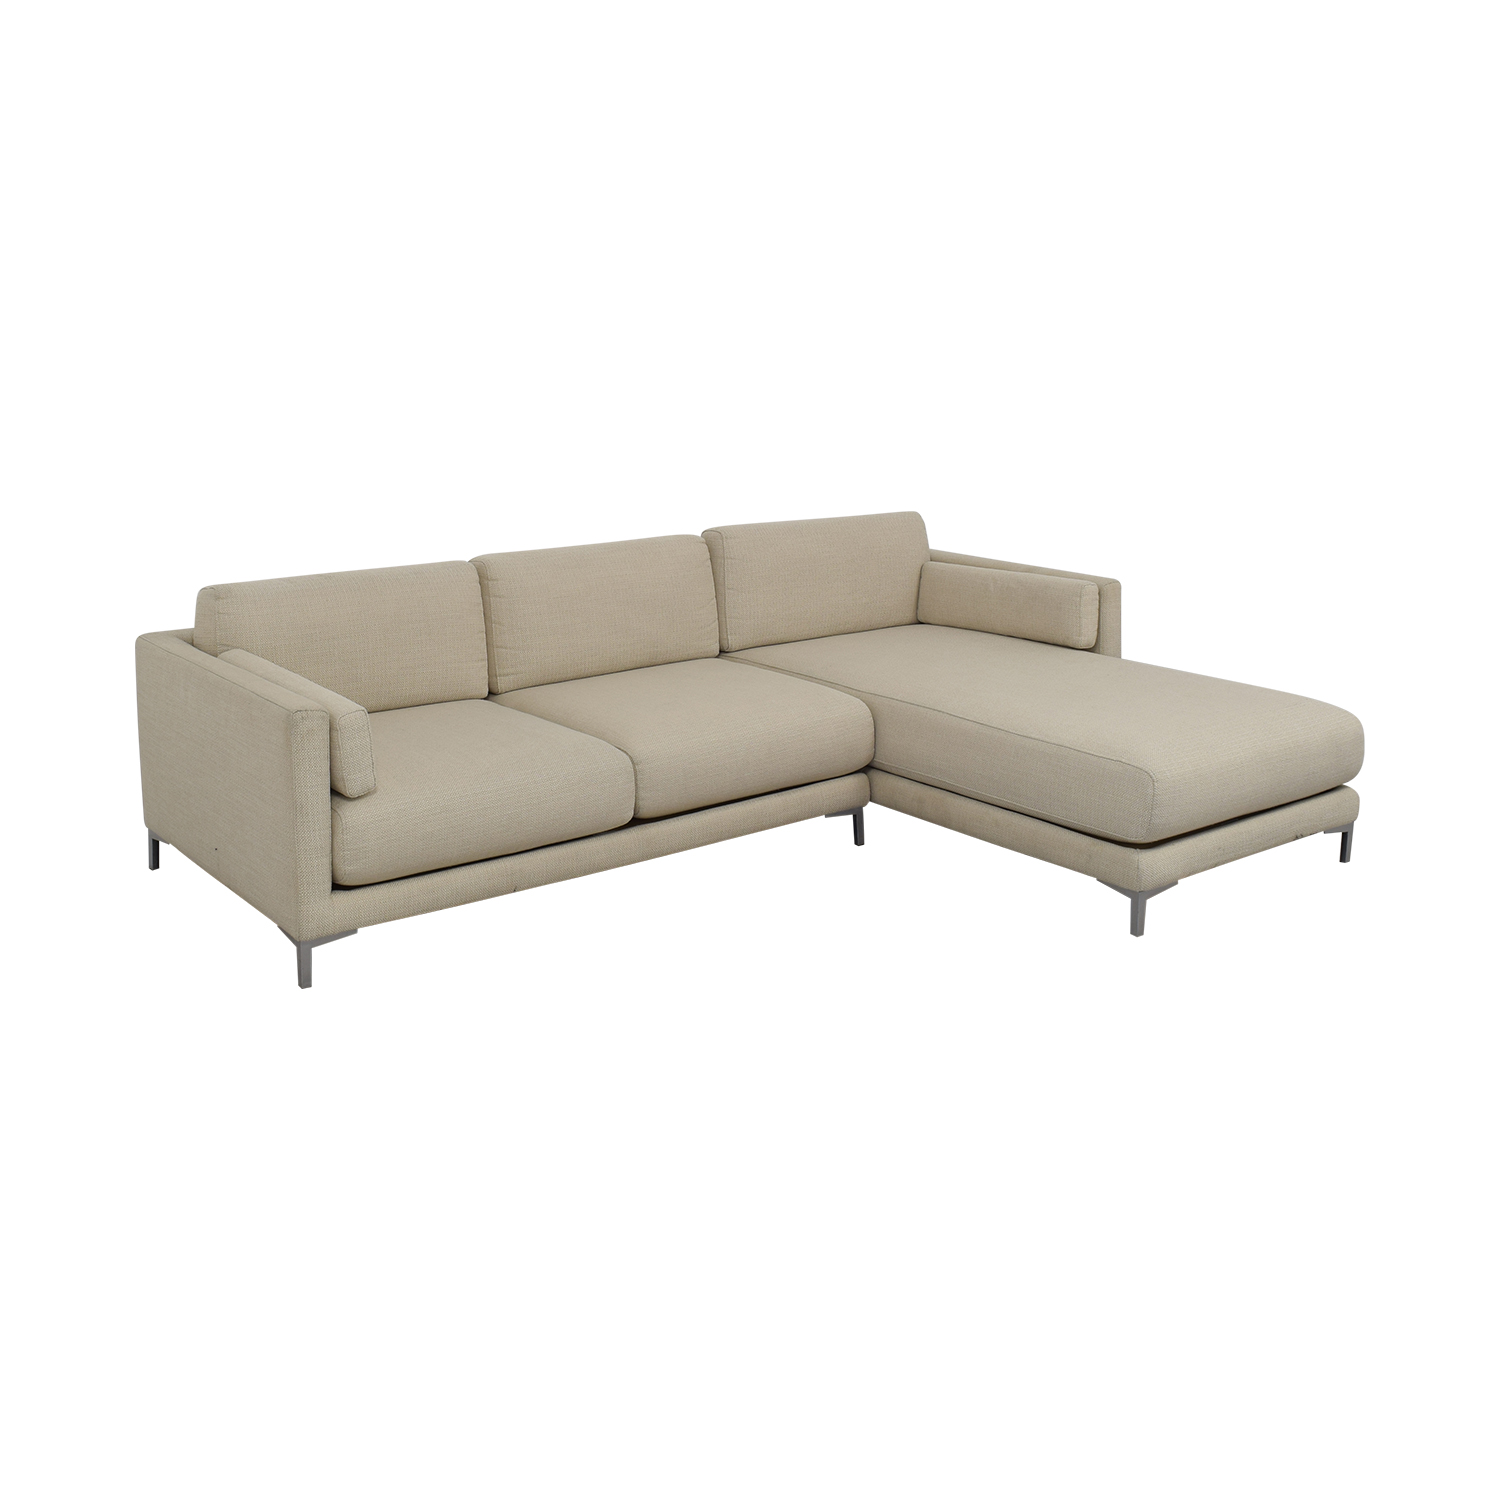 CB2 CB2 District Sectional Sofa with Chaise discount